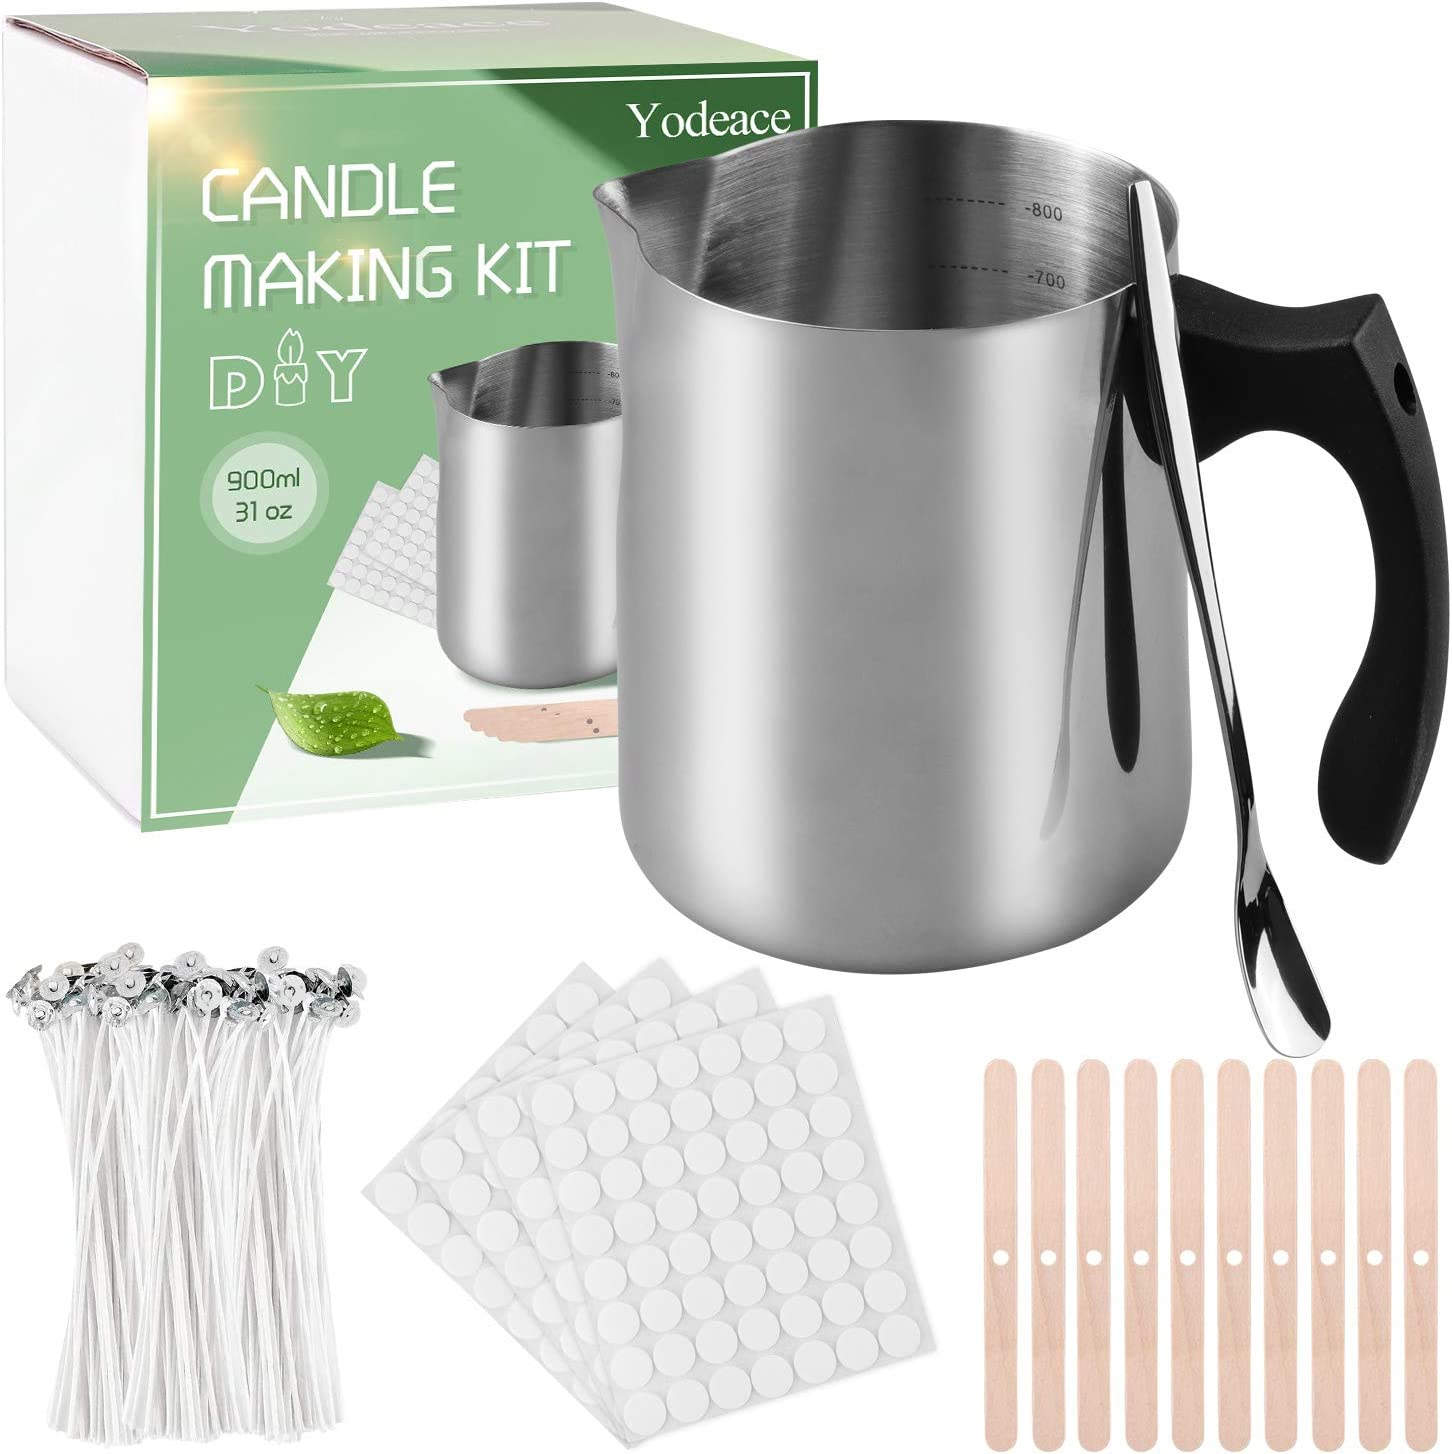 Yodeace Candle Making Kit,212pcs Candle Making Supplies Includes 31oz Candle Make Pouring Pot, Candle Wicks for Beginners Professionals